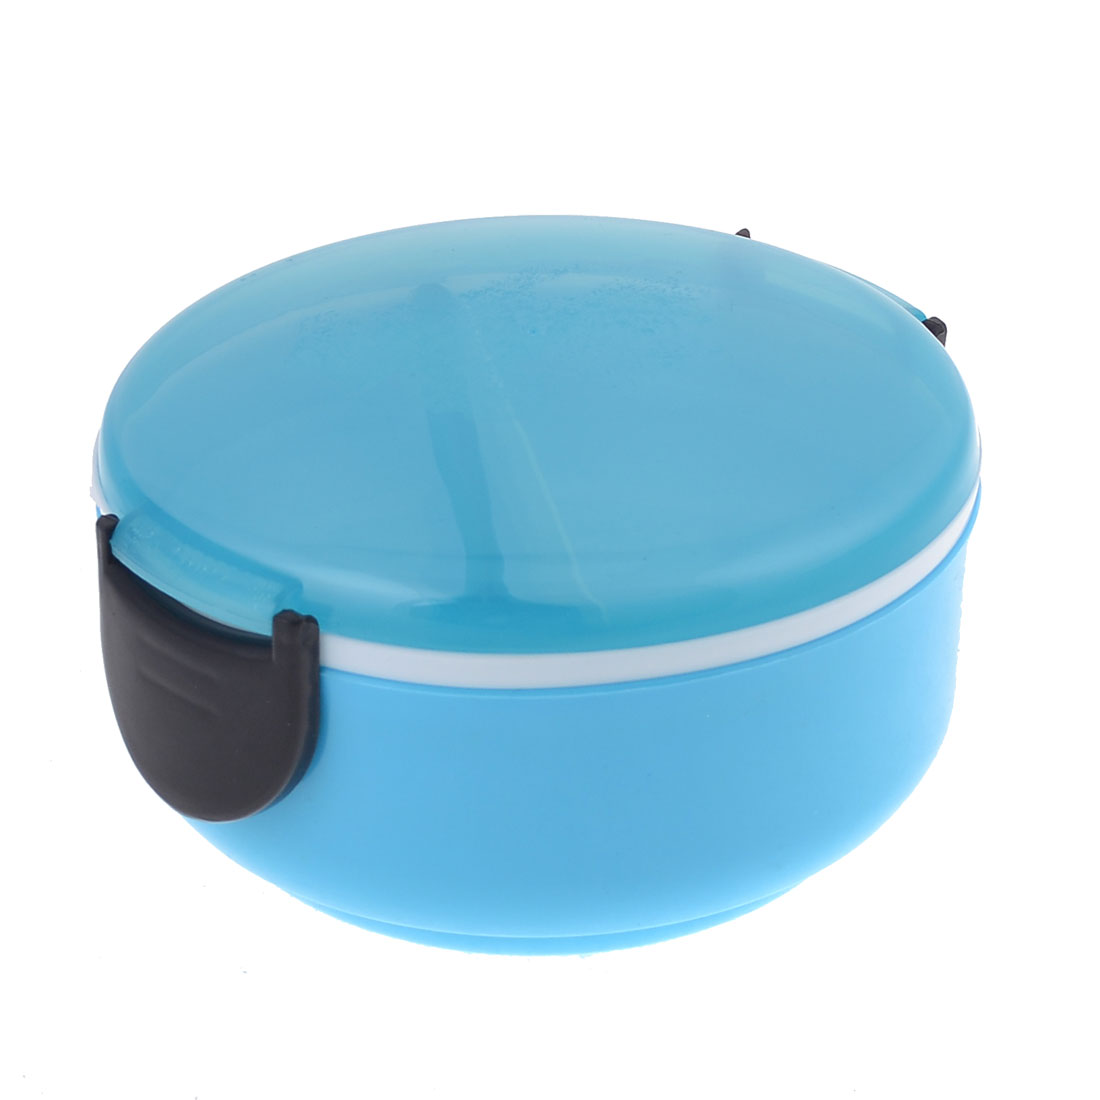 Blue Round Shaped Double Layers Food Dish Container Lunch Box w Spoon